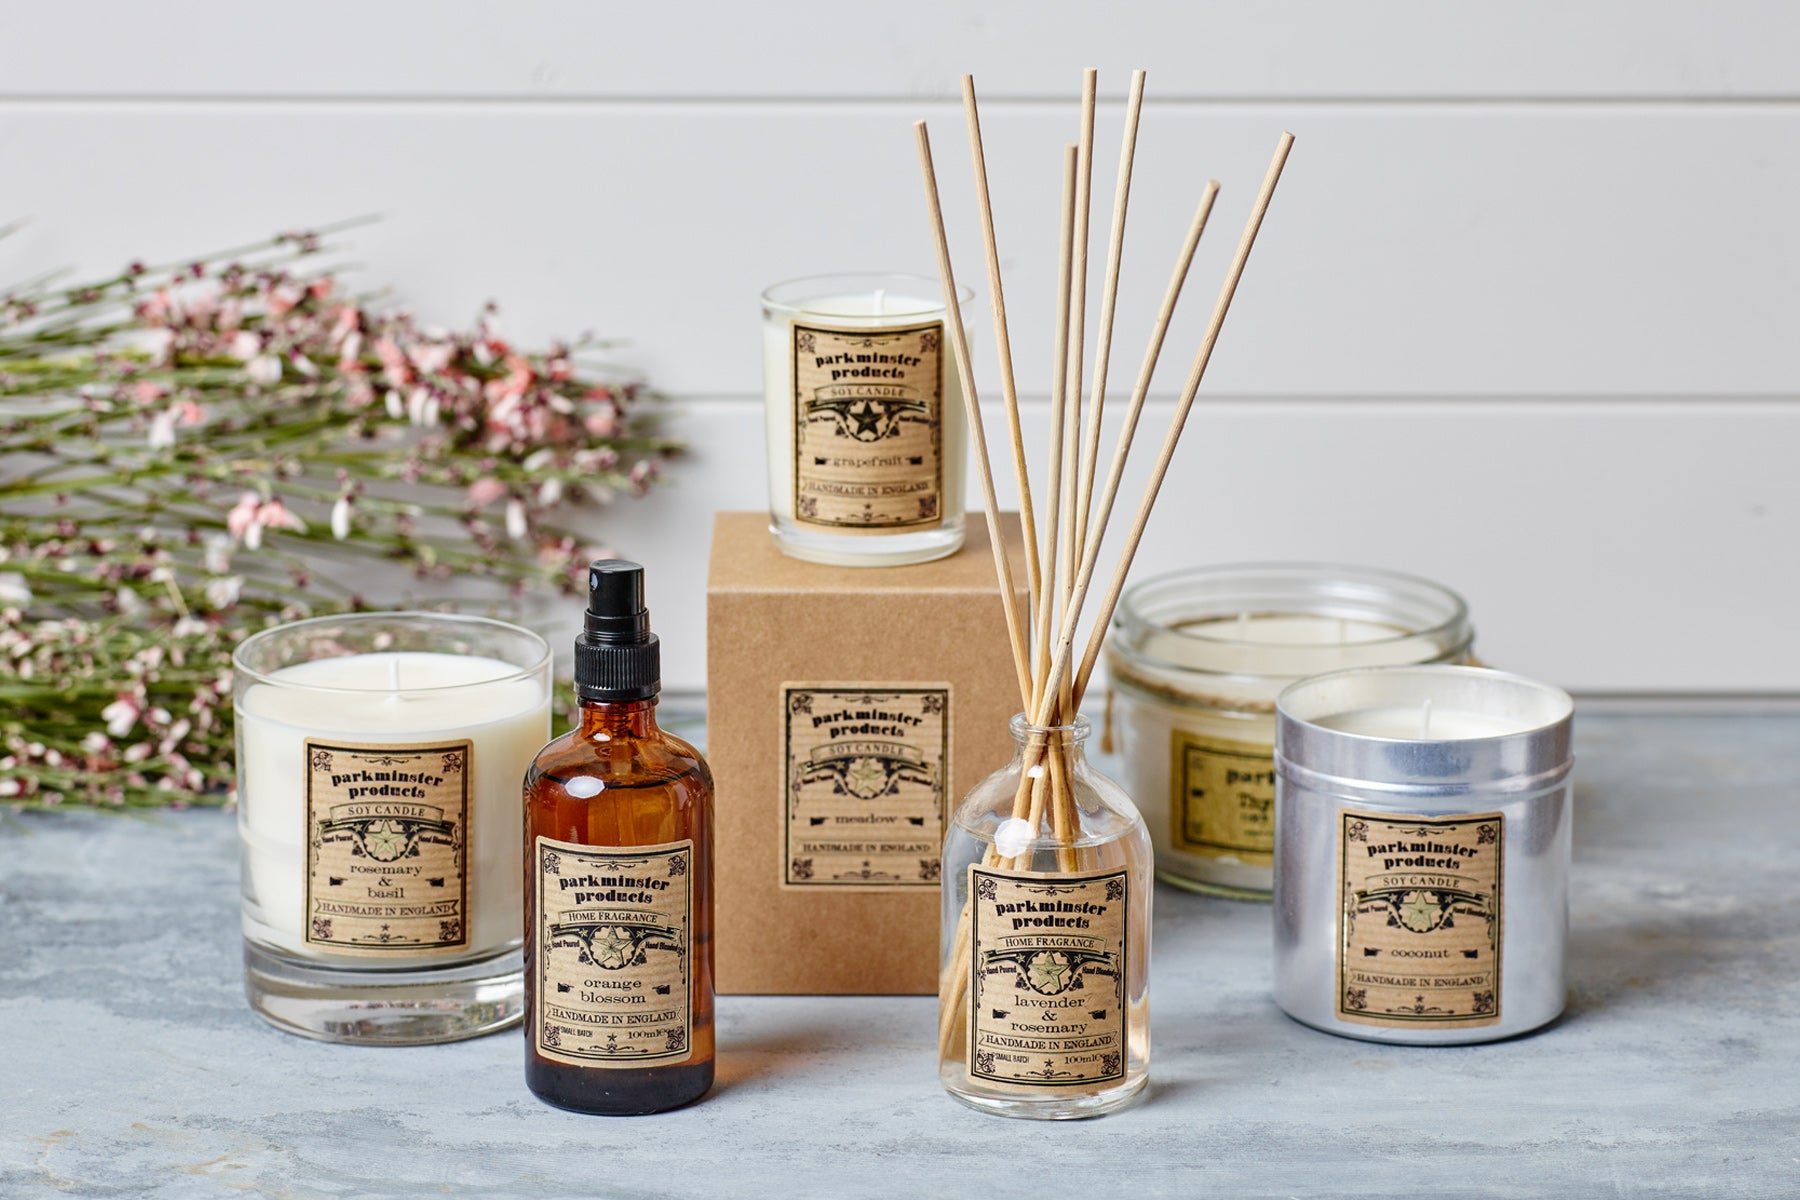 Parkminster Products - Scented Candles Room Sprays Reed Diffusers and Soaps - Star Collection